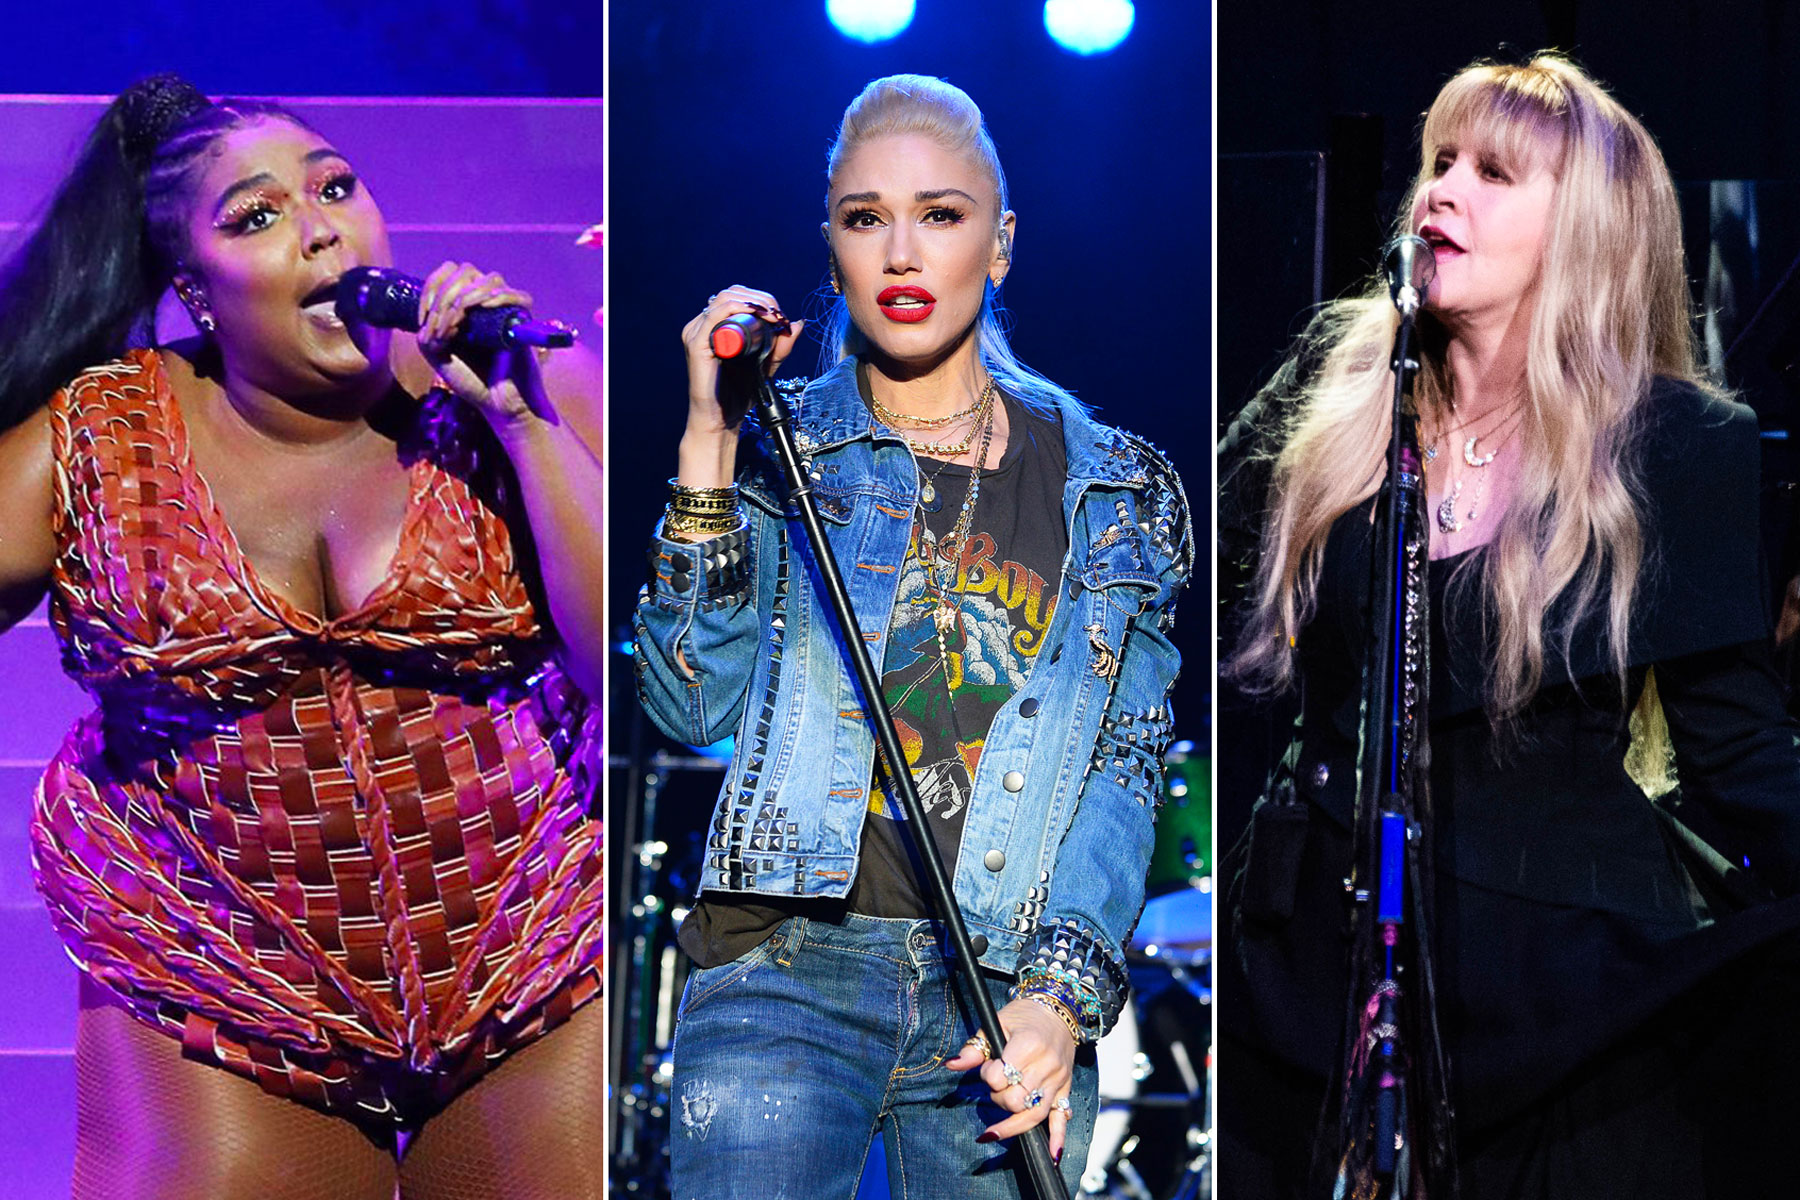 Lizzo, Stevie Nicks, Gwen Stefani Ask Congress to Help Ease Music's 'Existential Threat'